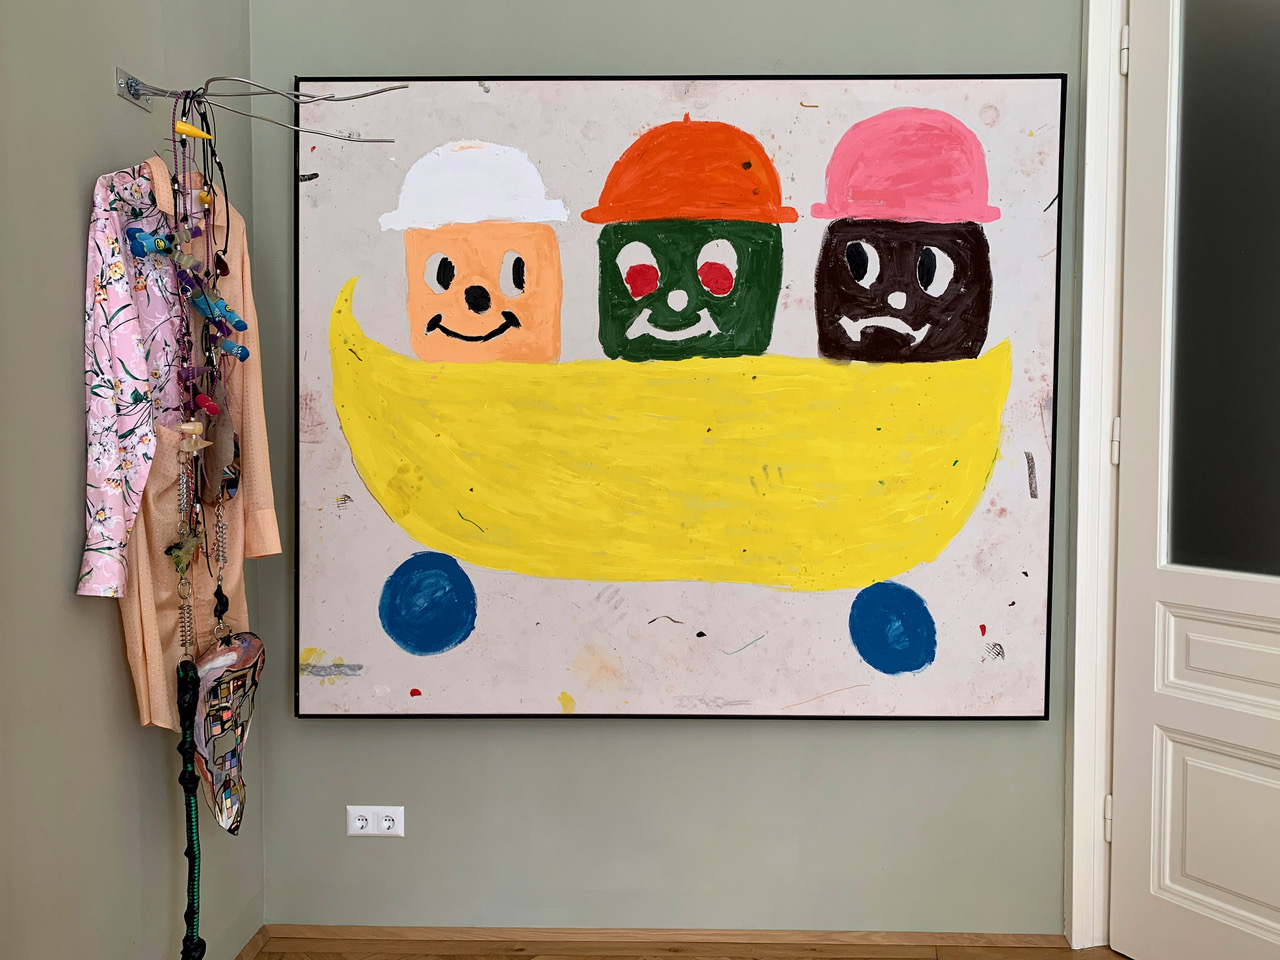 Left to right: an artwork by KAYA (Kerstin Brätsch & Debo Eilers), and a painting by Szabolcs Bozo. Courtesy of Nina Gscheider and Franz Ihm.